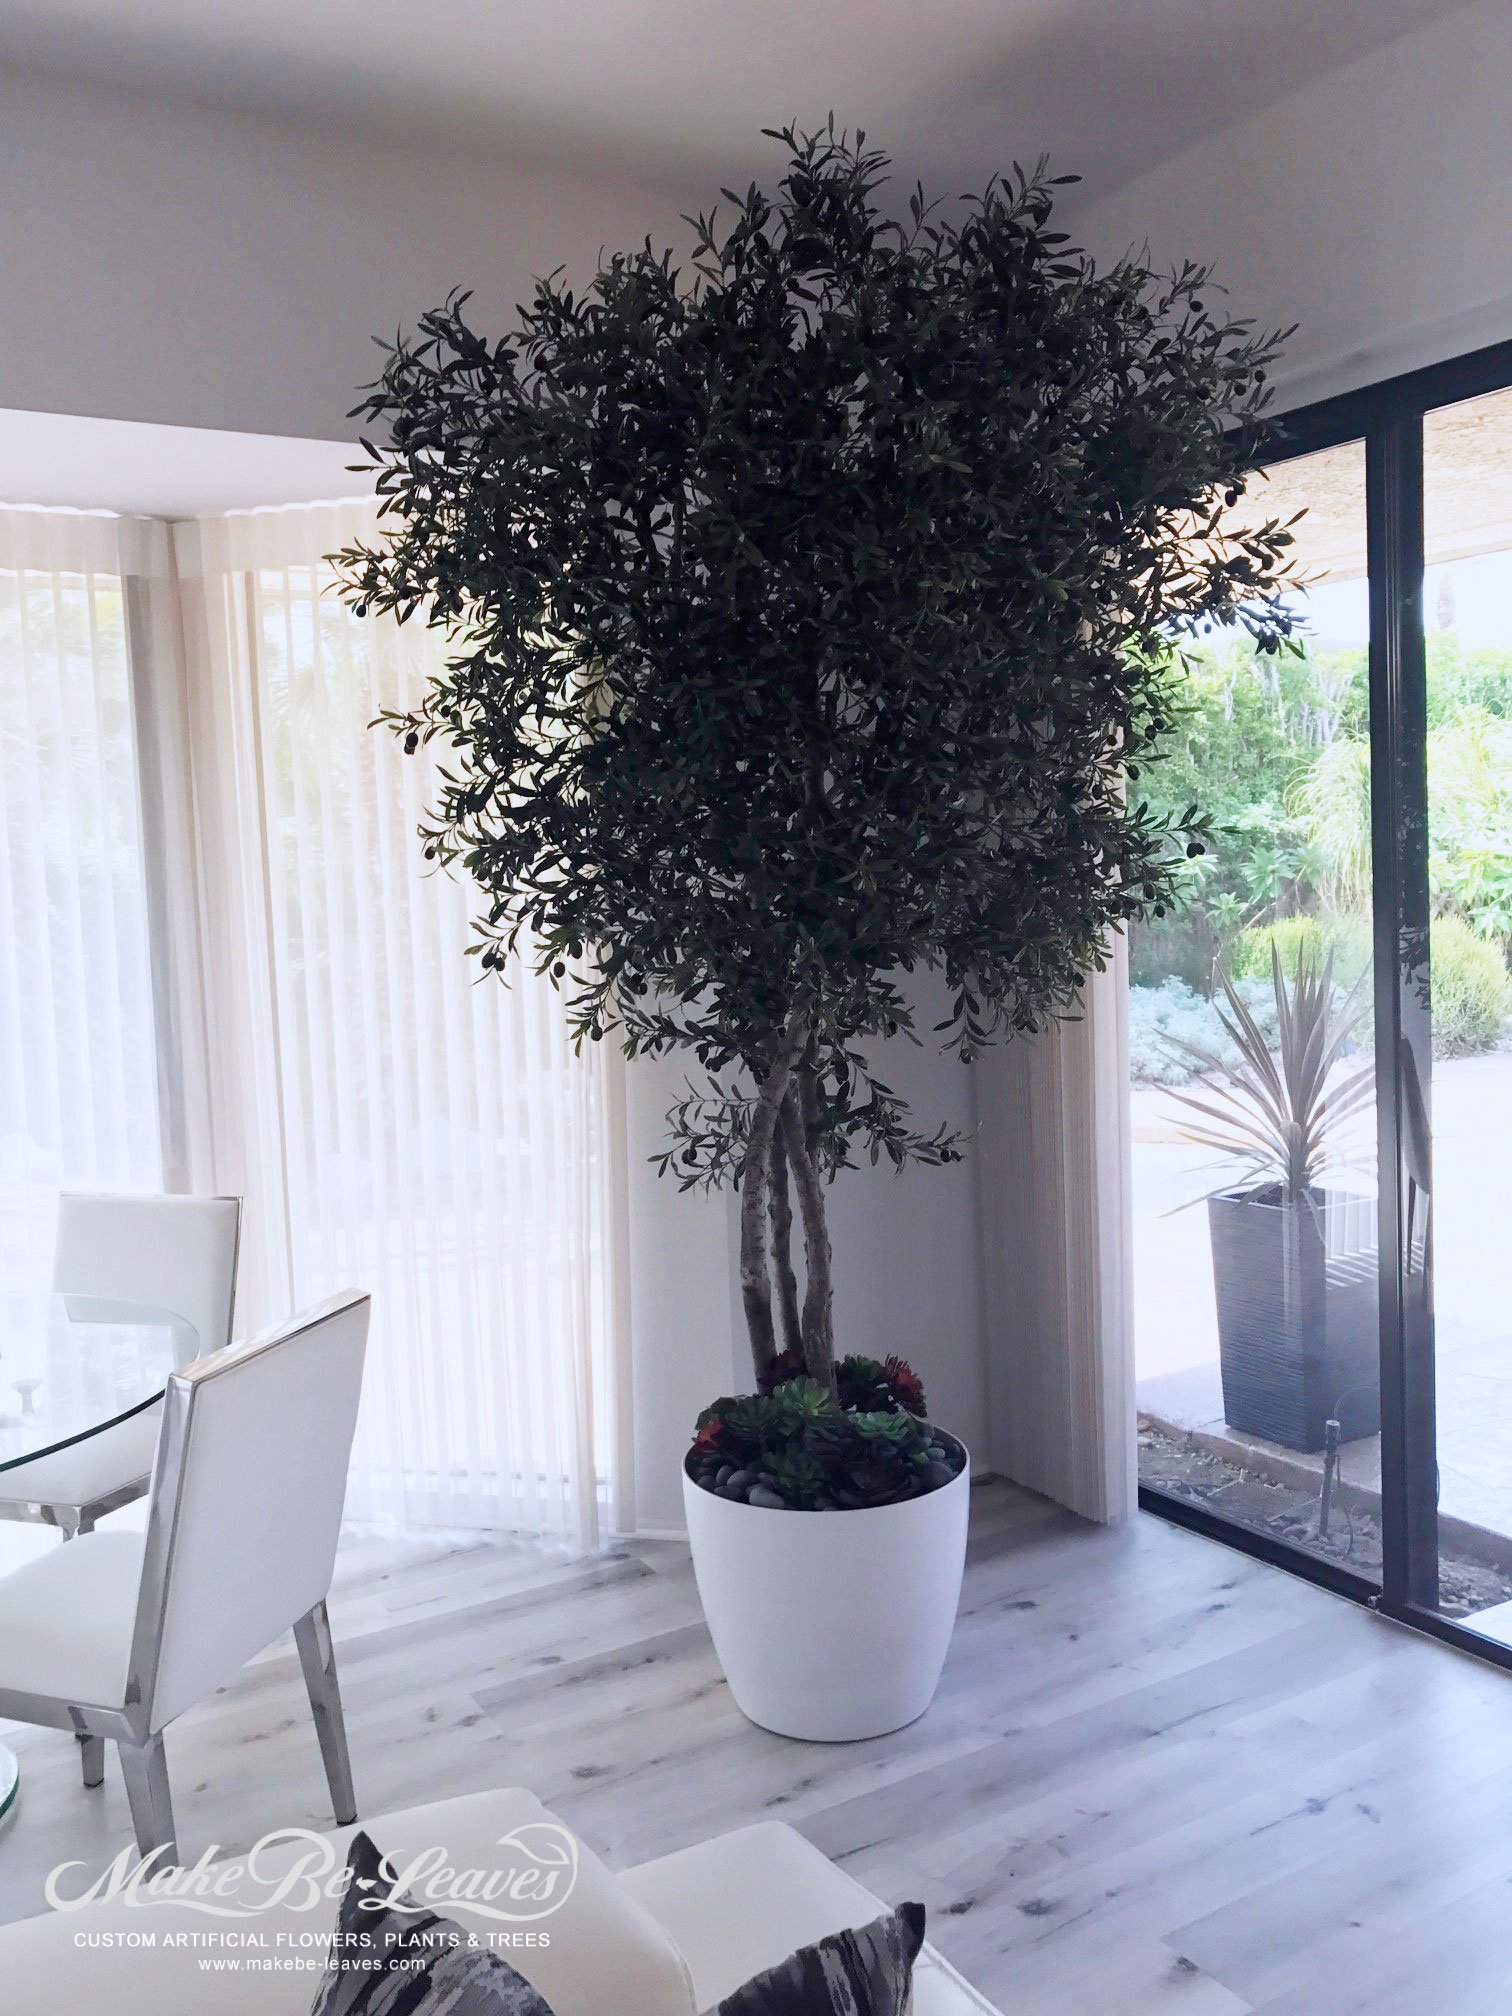 Brand-new Artificial OLIVE Trees In Custom Containers - Make Be-Leaves IO78